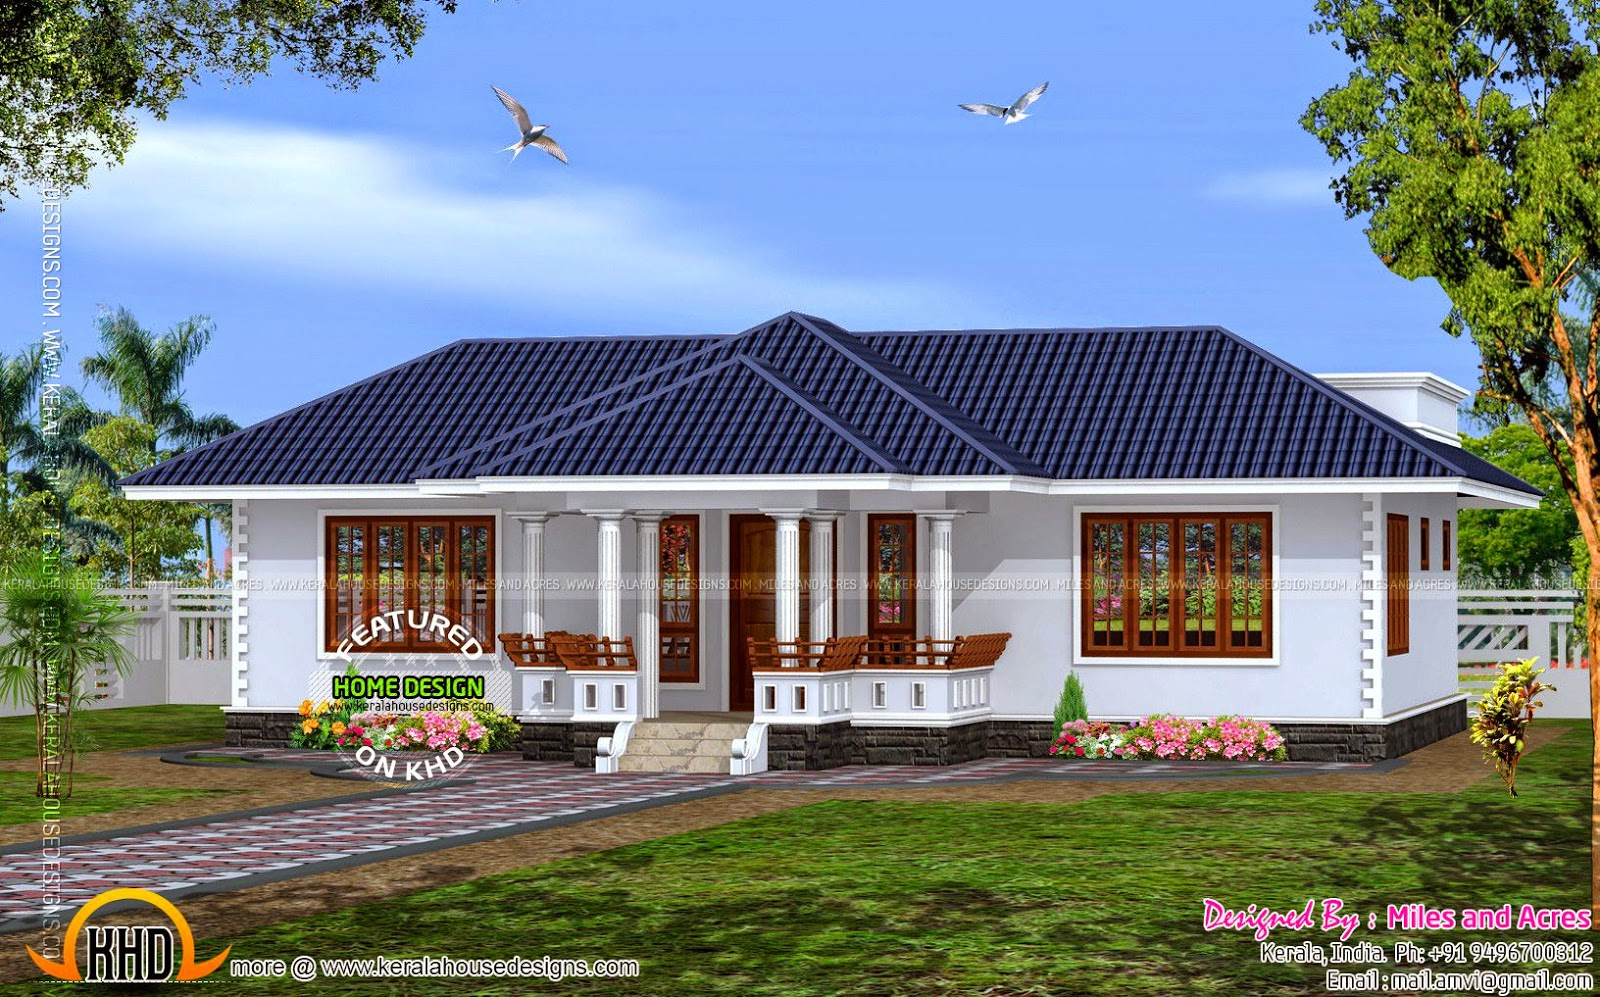 Siddu buzz online house plan of single floor house kerala home design House plan design online